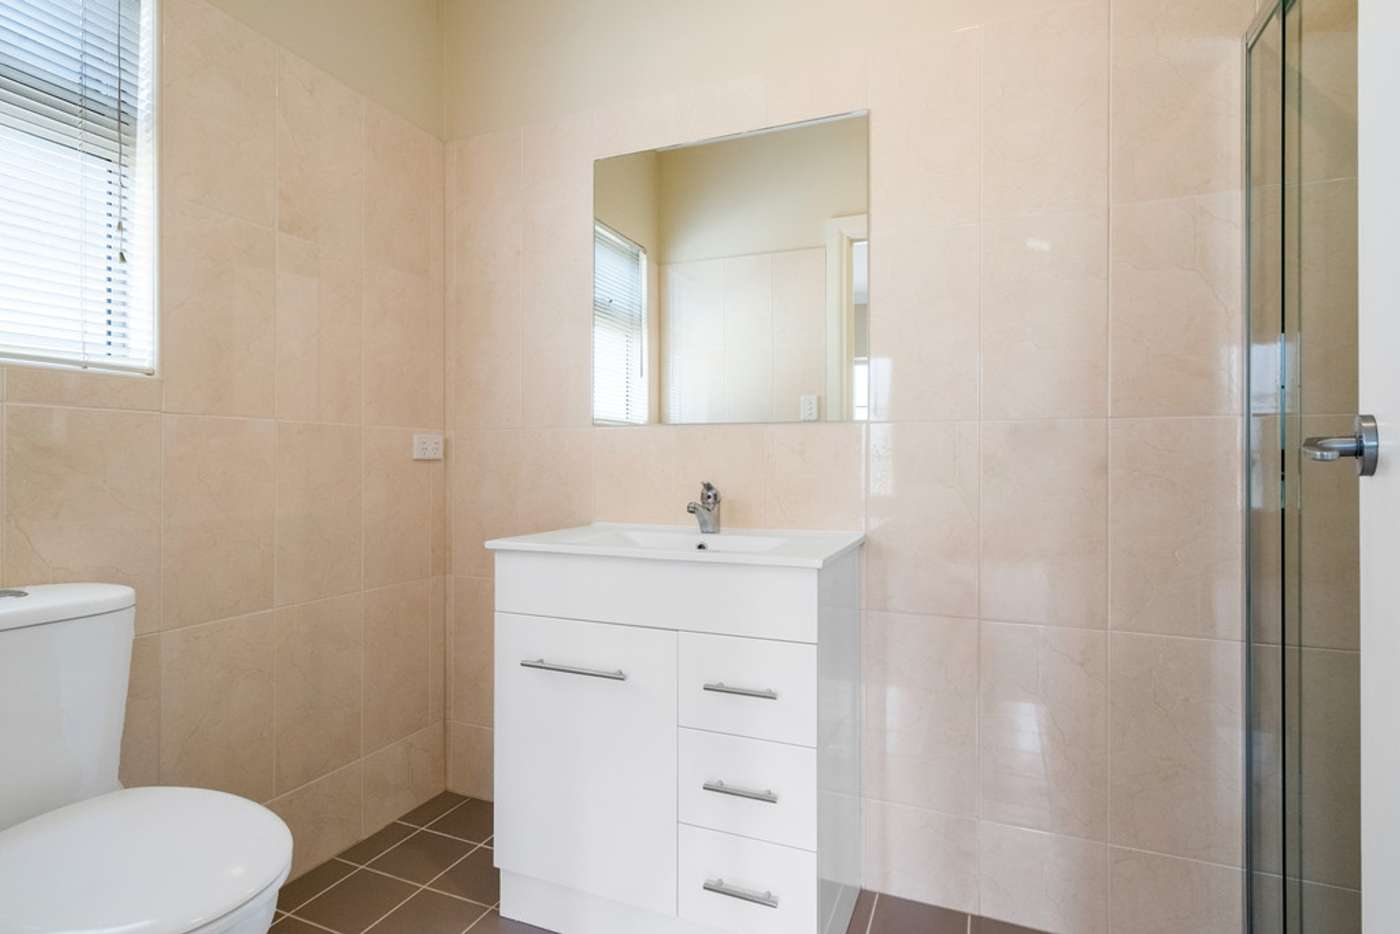 Seventh view of Homely house listing, 624a Burbridge Road, West Beach SA 5024